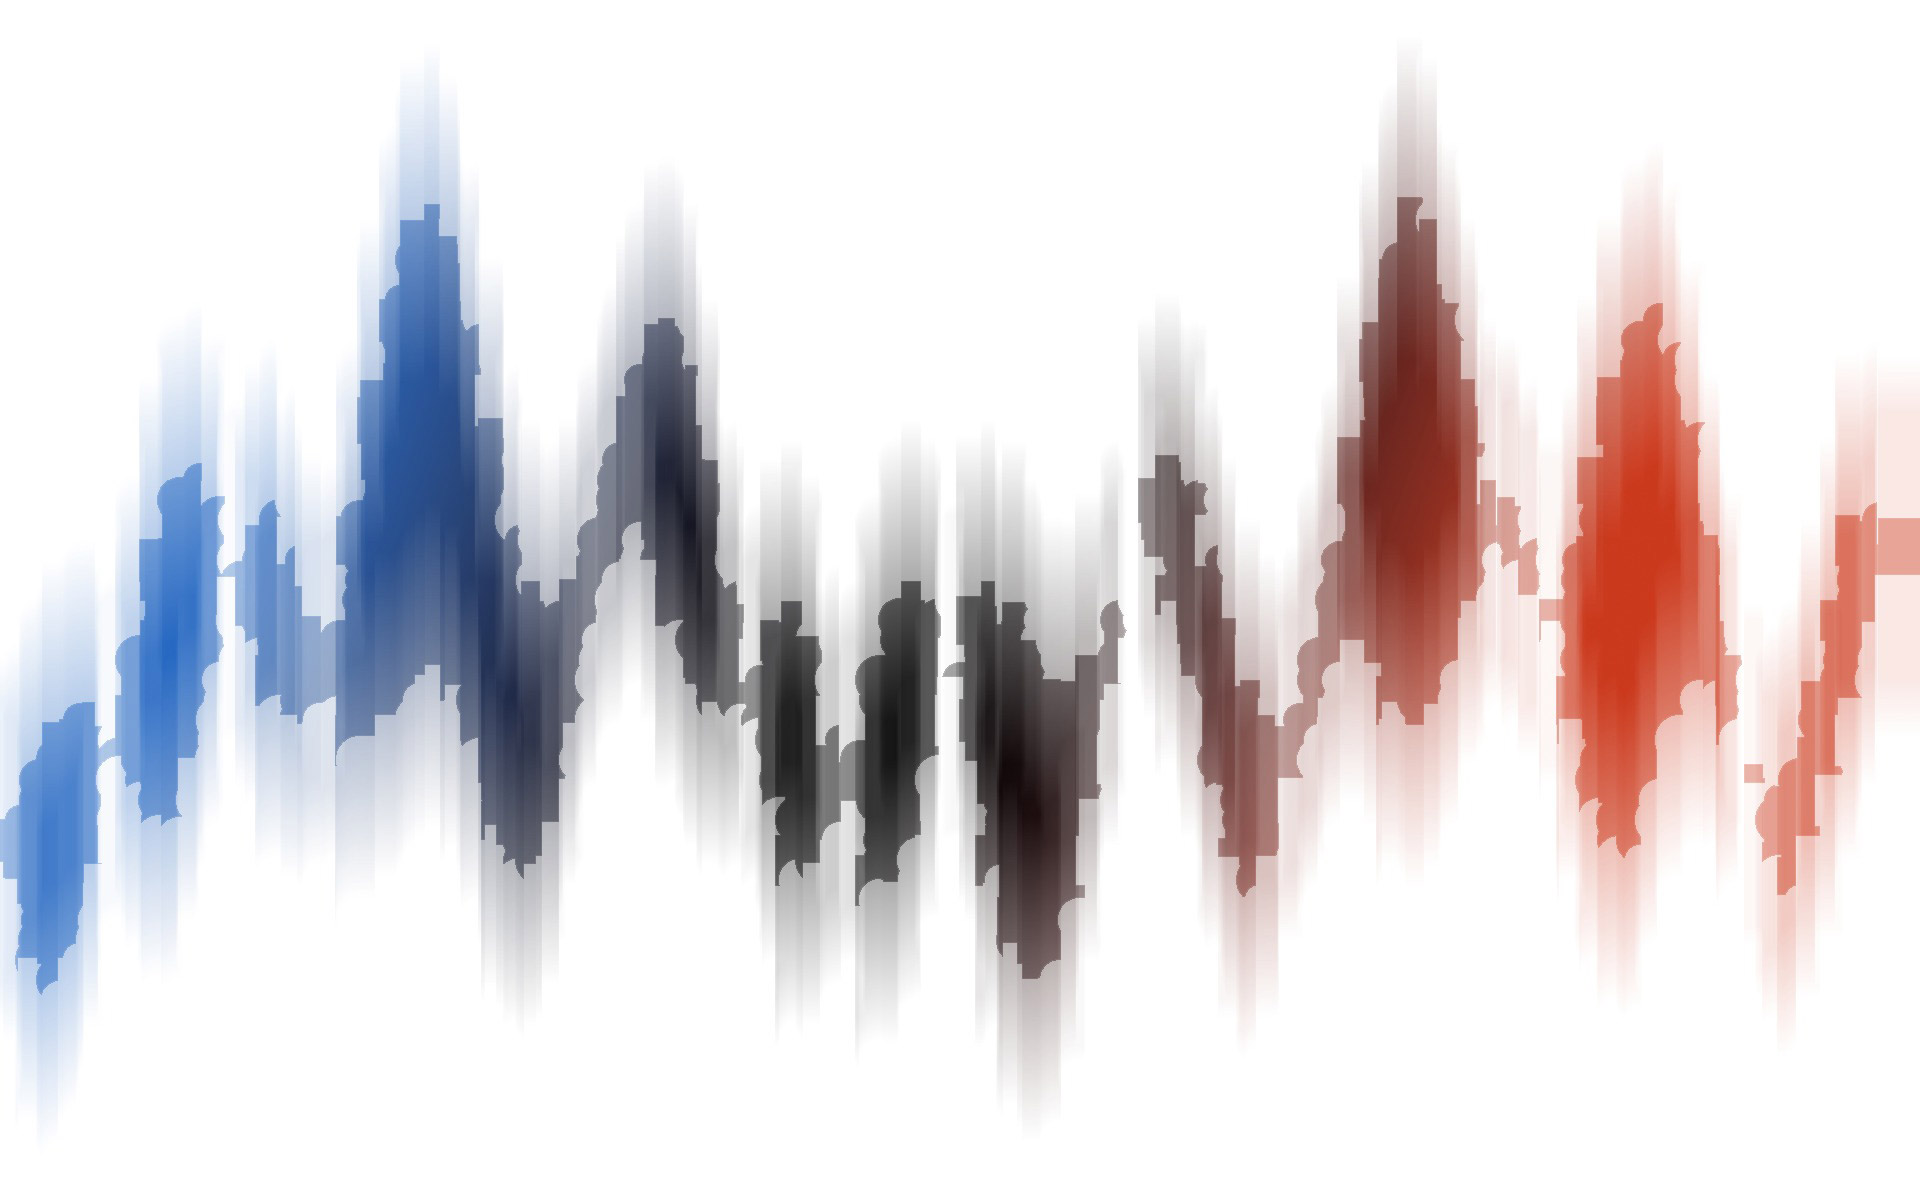 sound wave wallpapers55com   Best Wallpapers for PCs Laptops 1920x1200